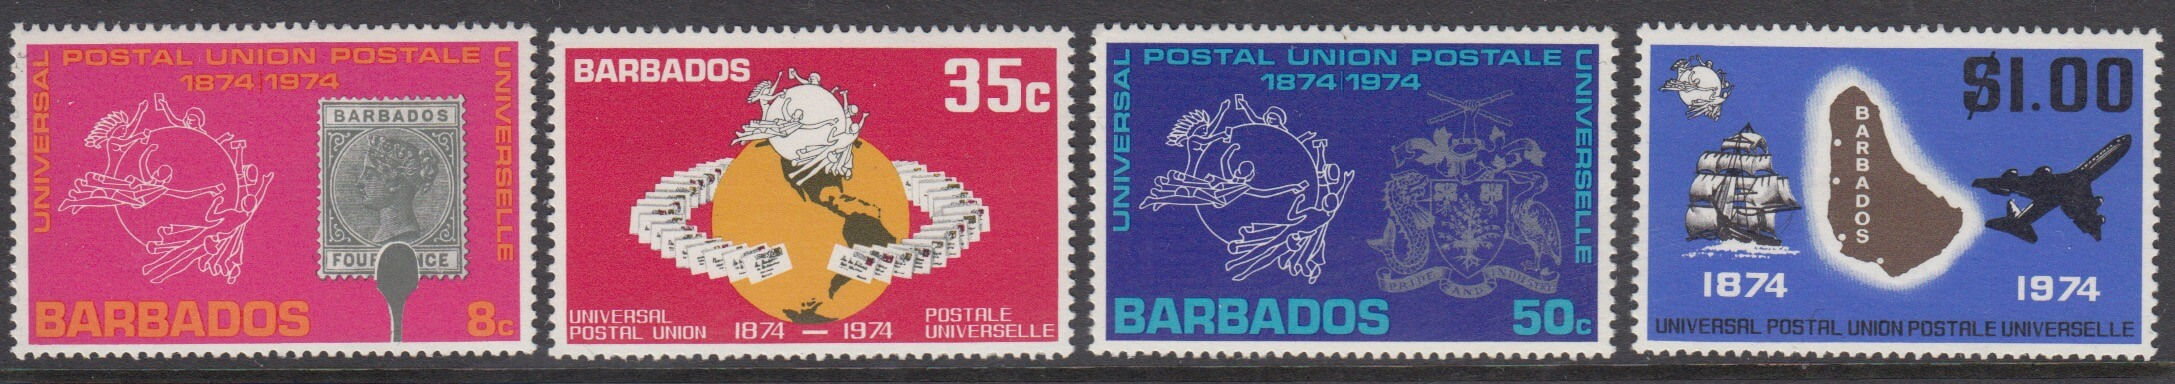 Centenary of Universal Postal Union